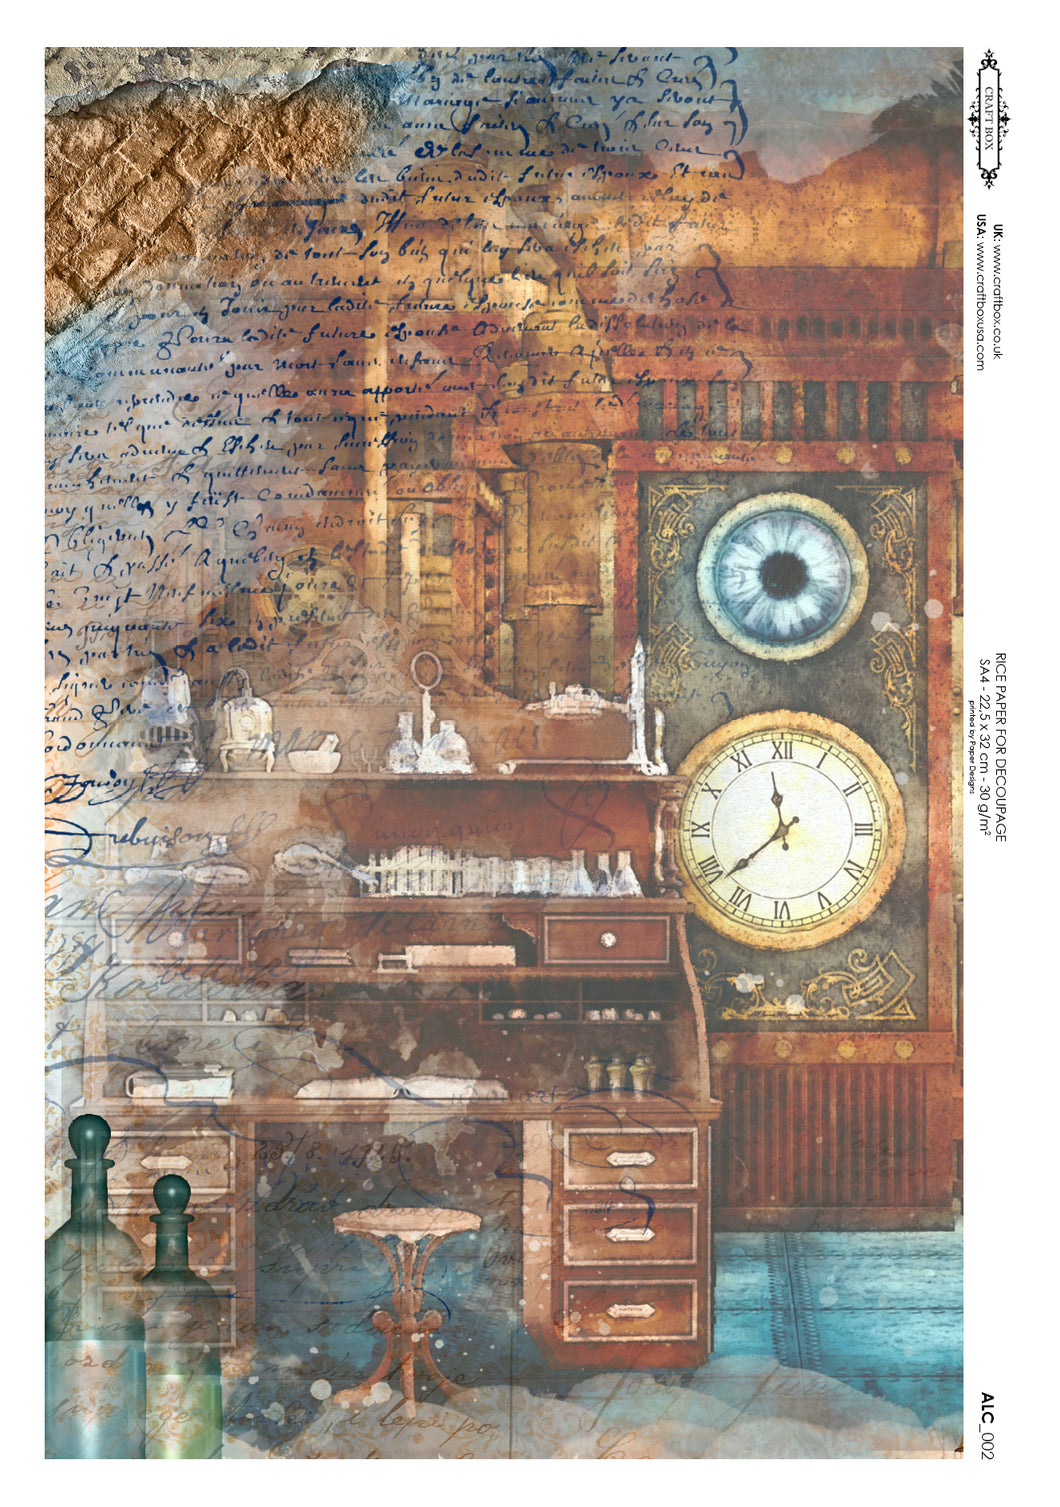 Decoupage Rice Paper - The Alchemist's Desk (A4)